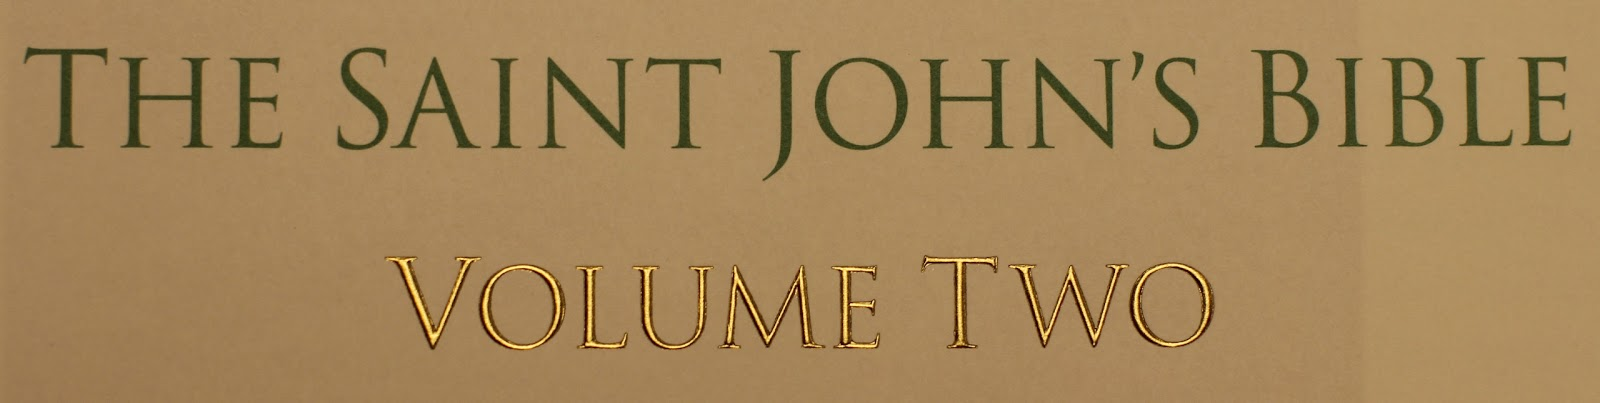 The Saint John's Bible Volume Two